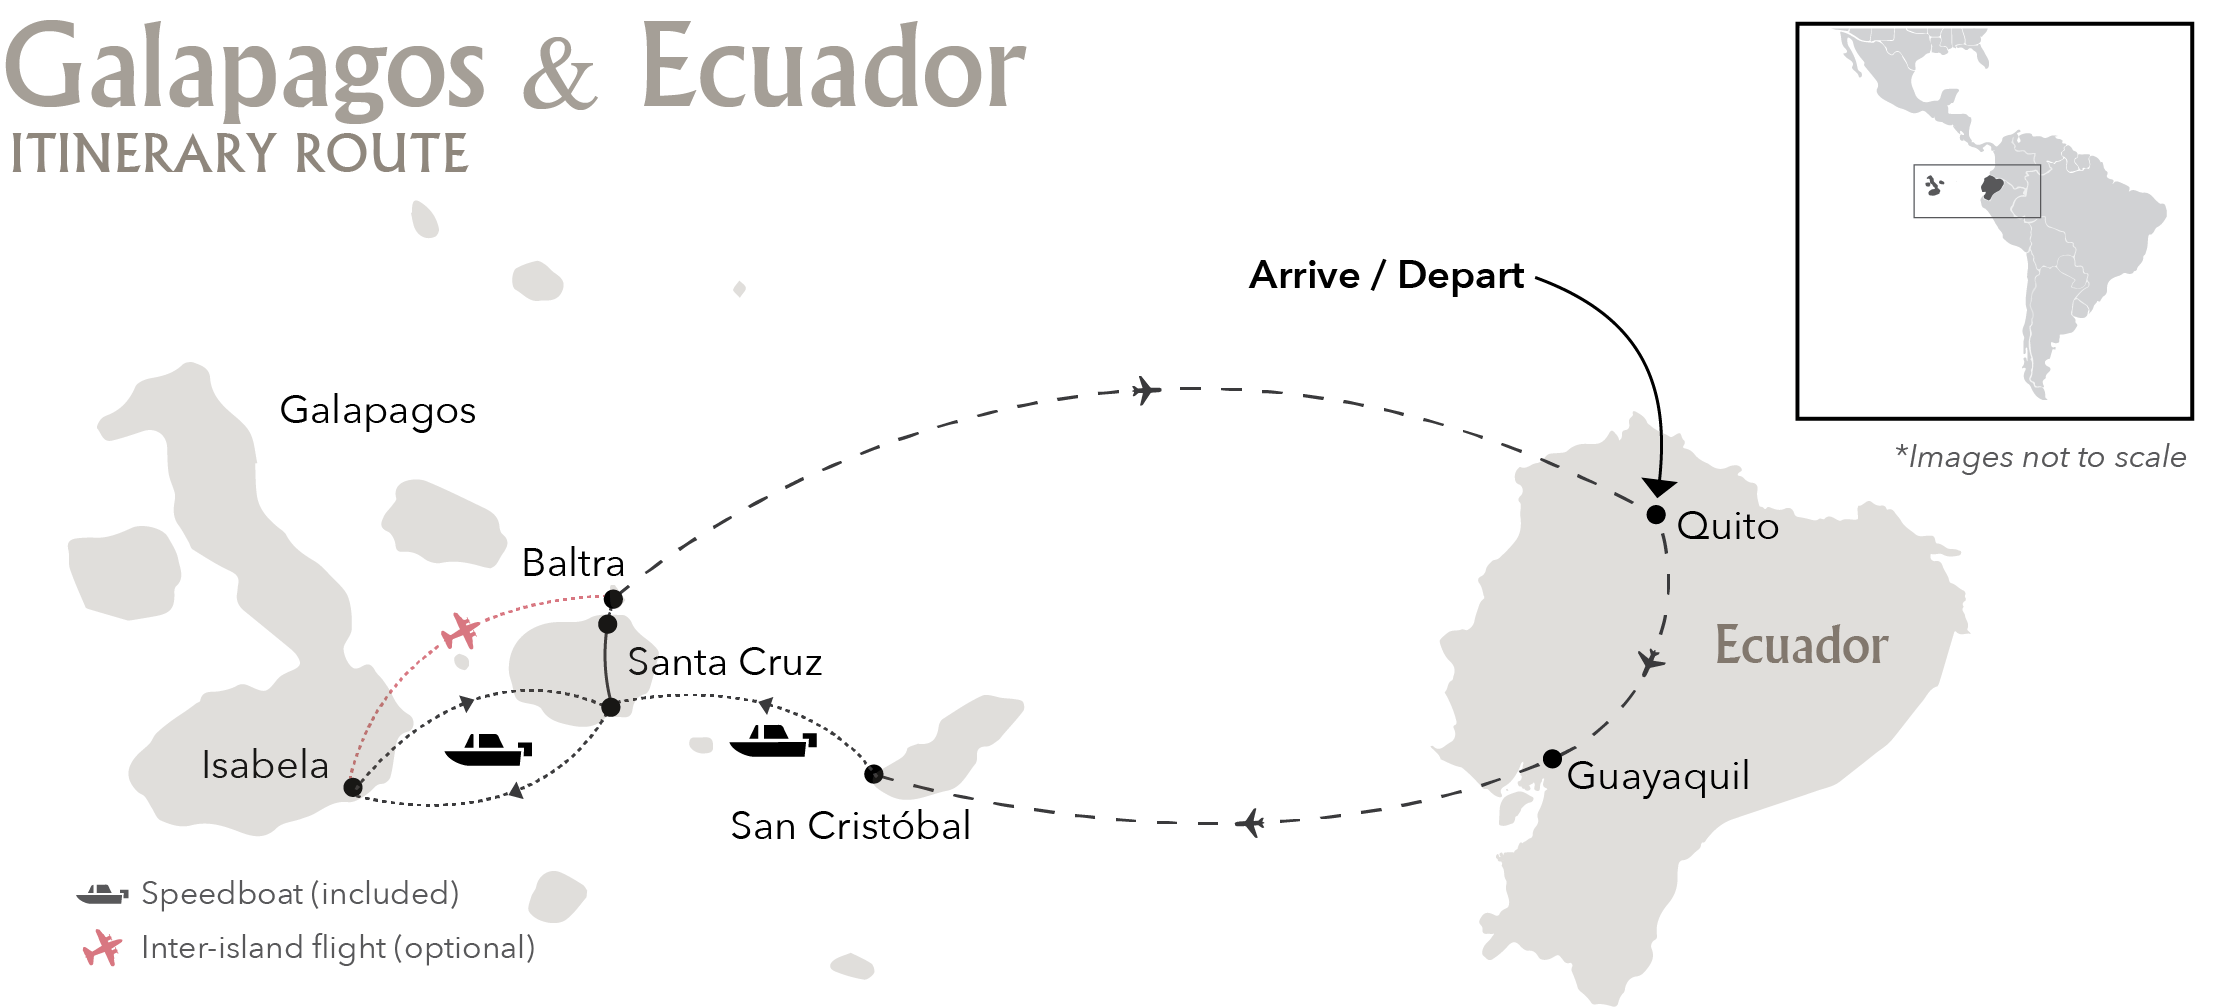 Galapagos Multisport Itinerary Route